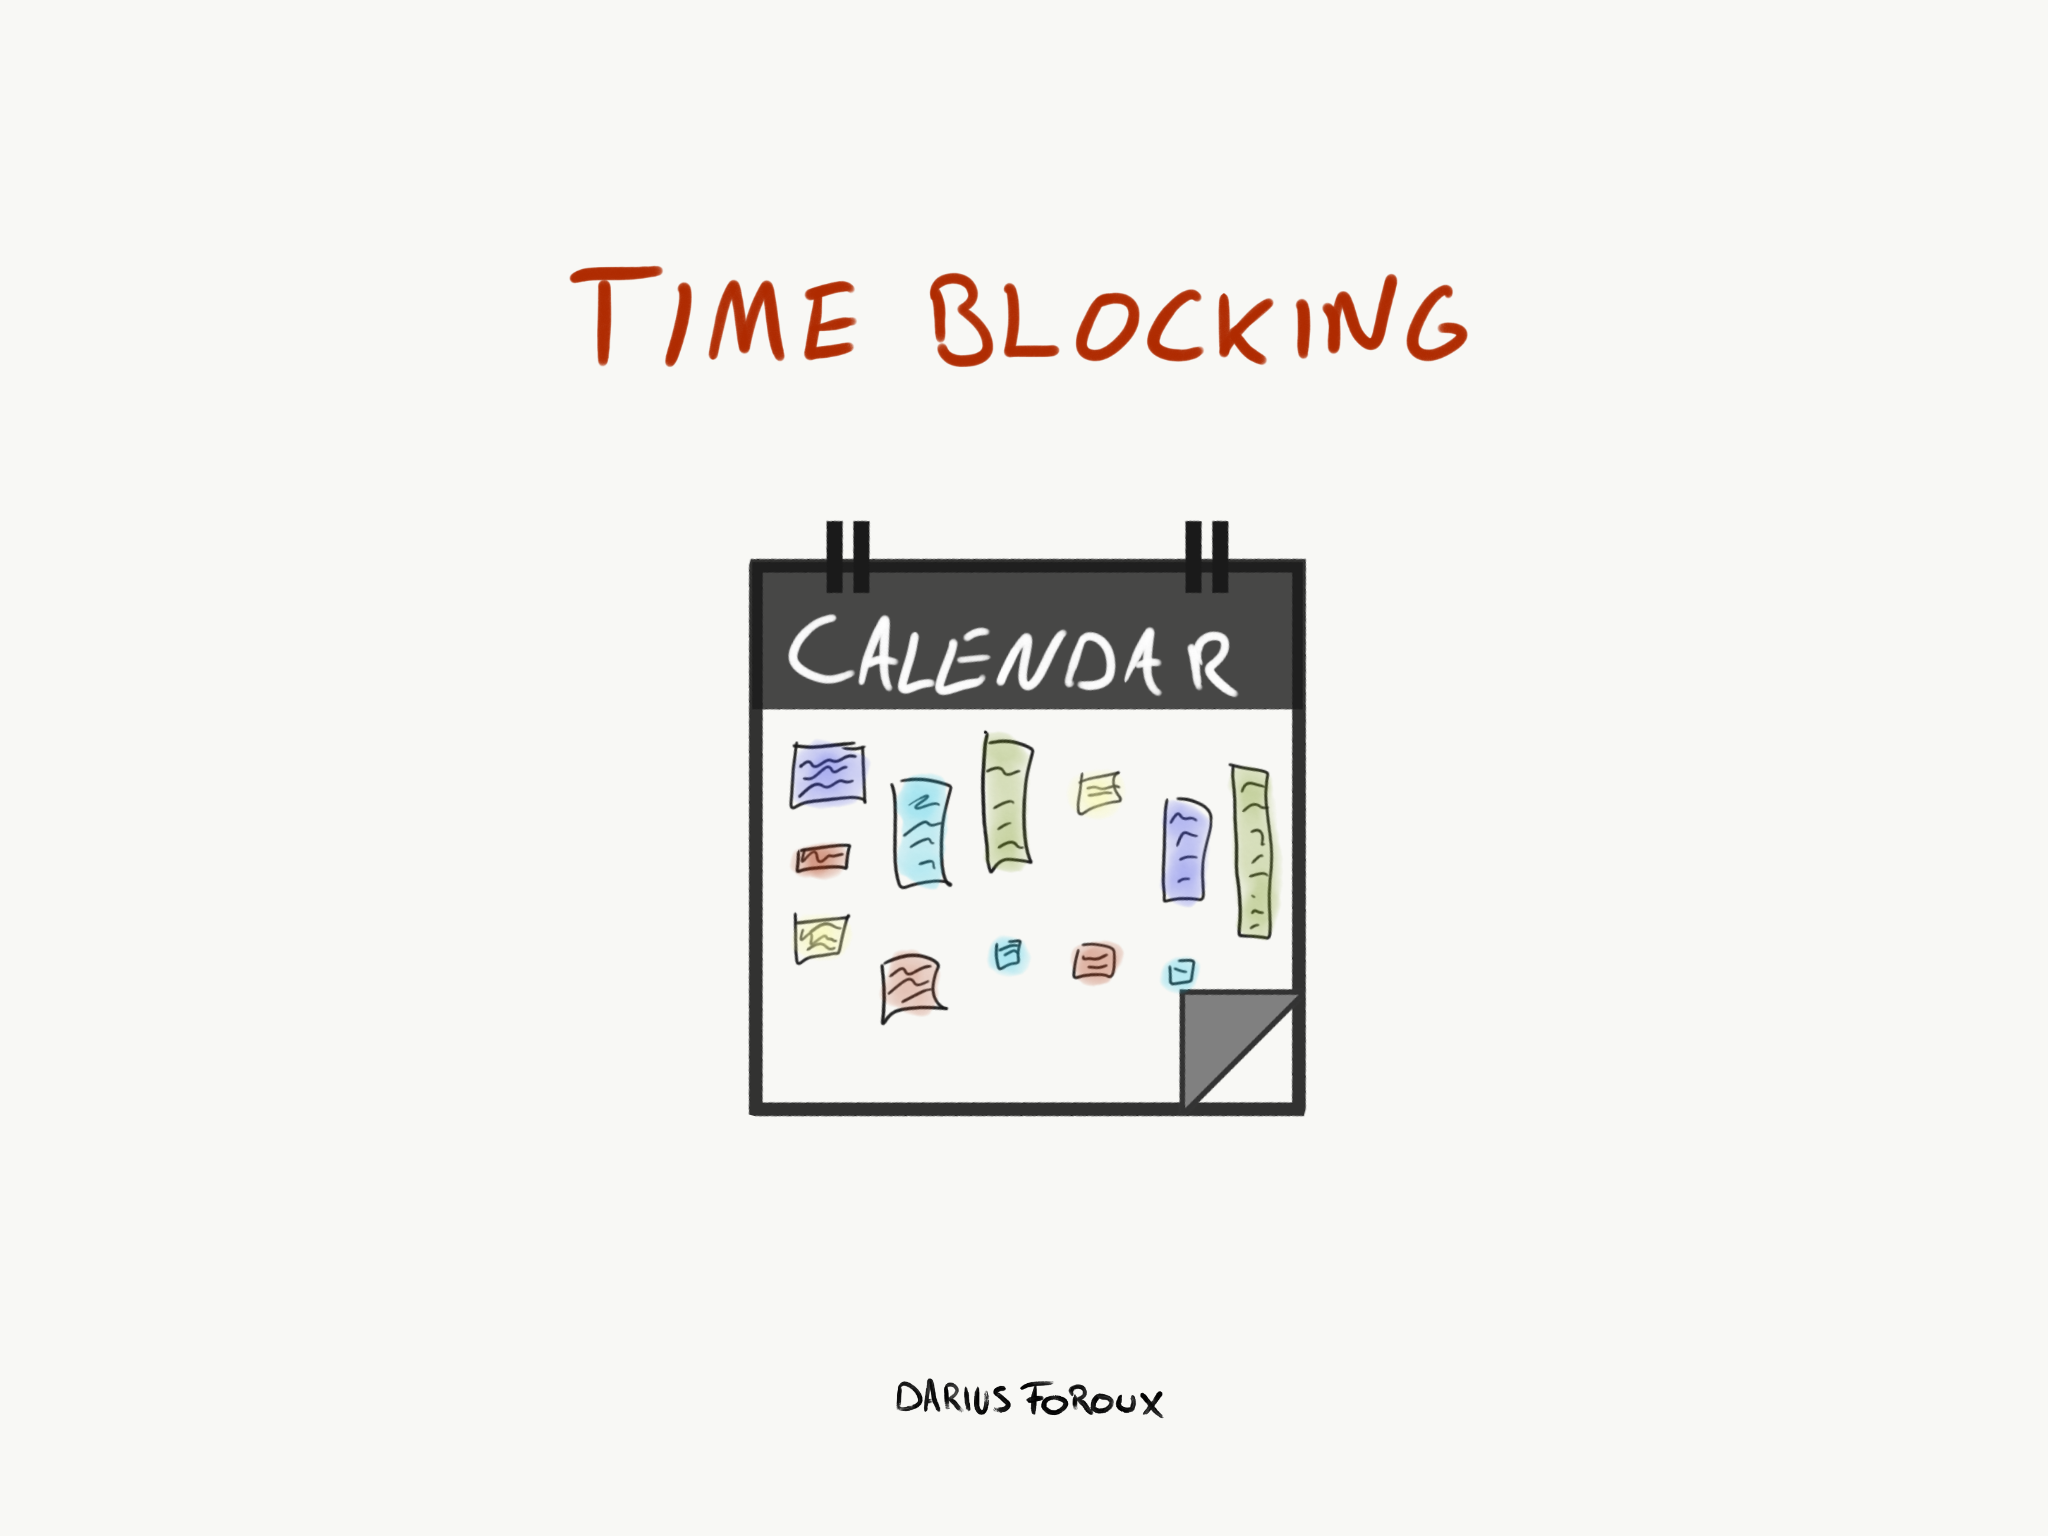 Time Blocking: Improve Your Focus And Get More Meaningful Work Done - Darius Foroux